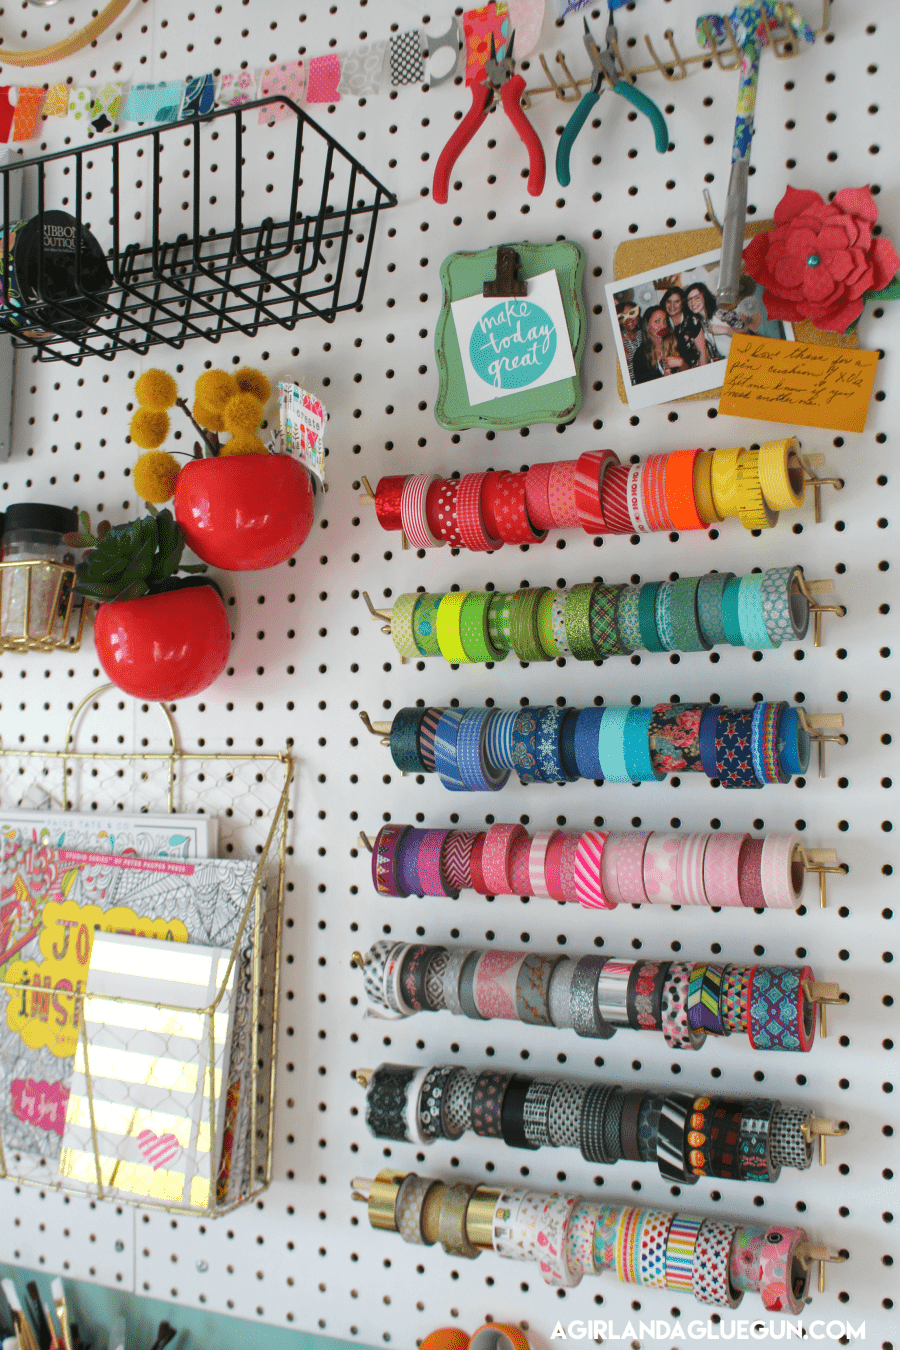 Organizing My Craft Room A Girl And A Glue Gun